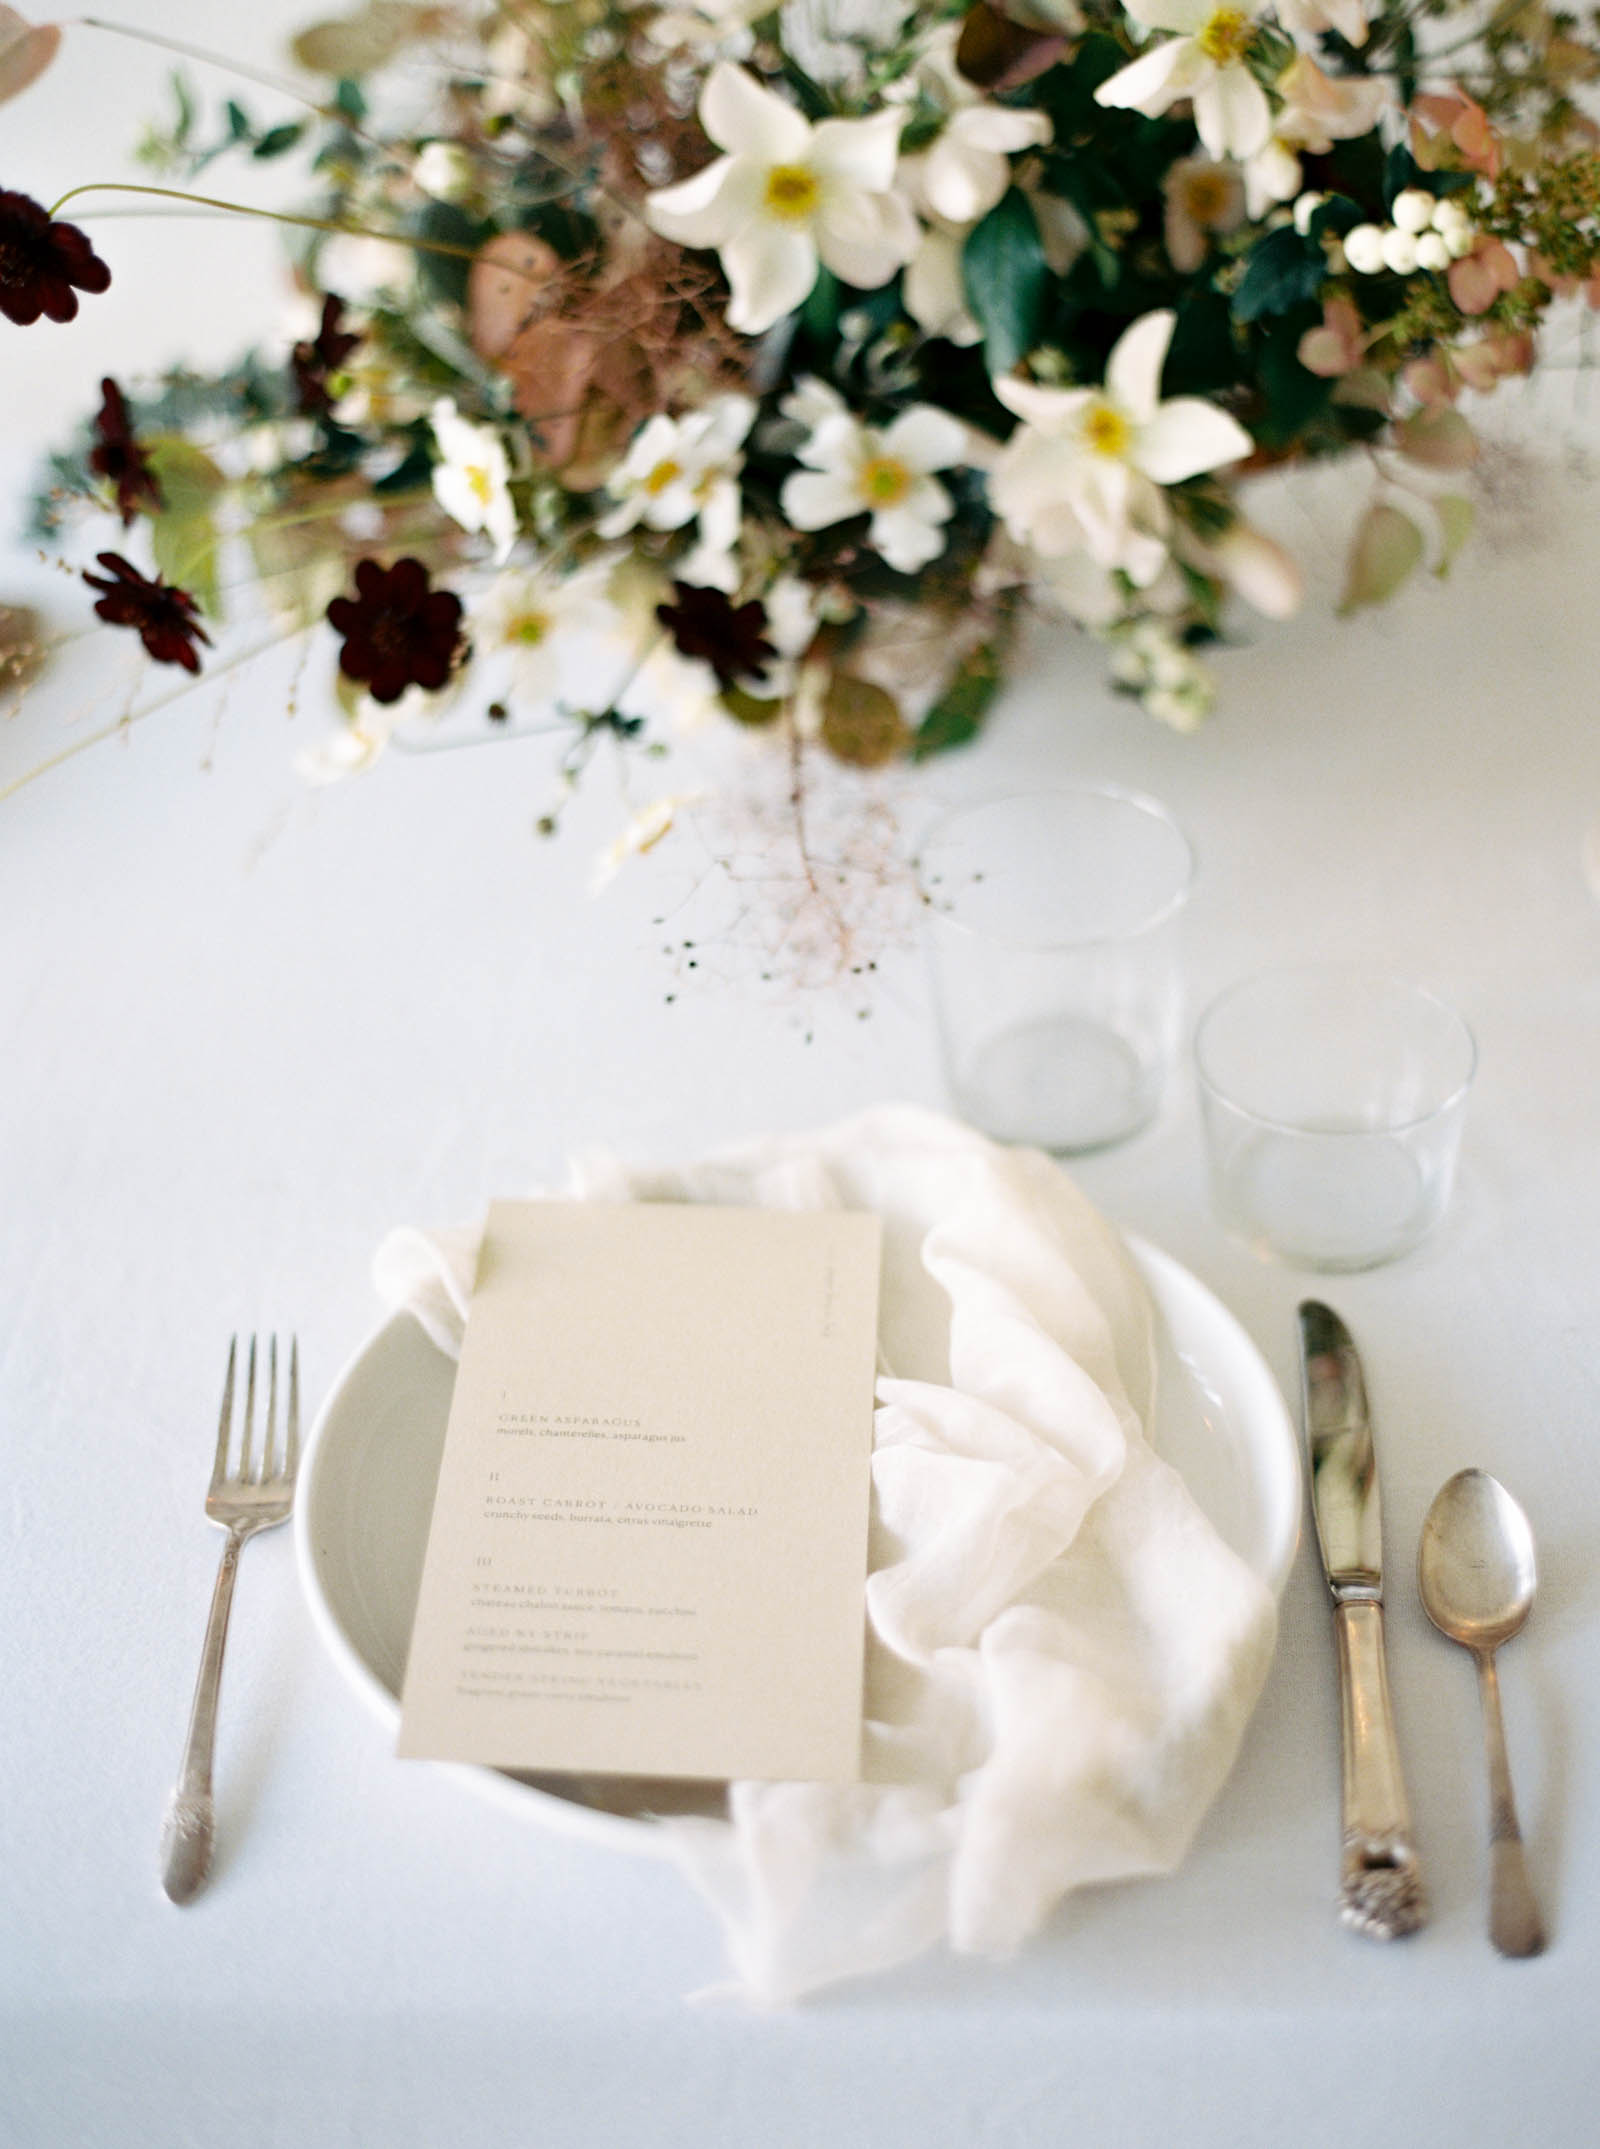 Organic Garden style florals for a modern Seattle wedding captured on film by PNW photographer Anna Peters